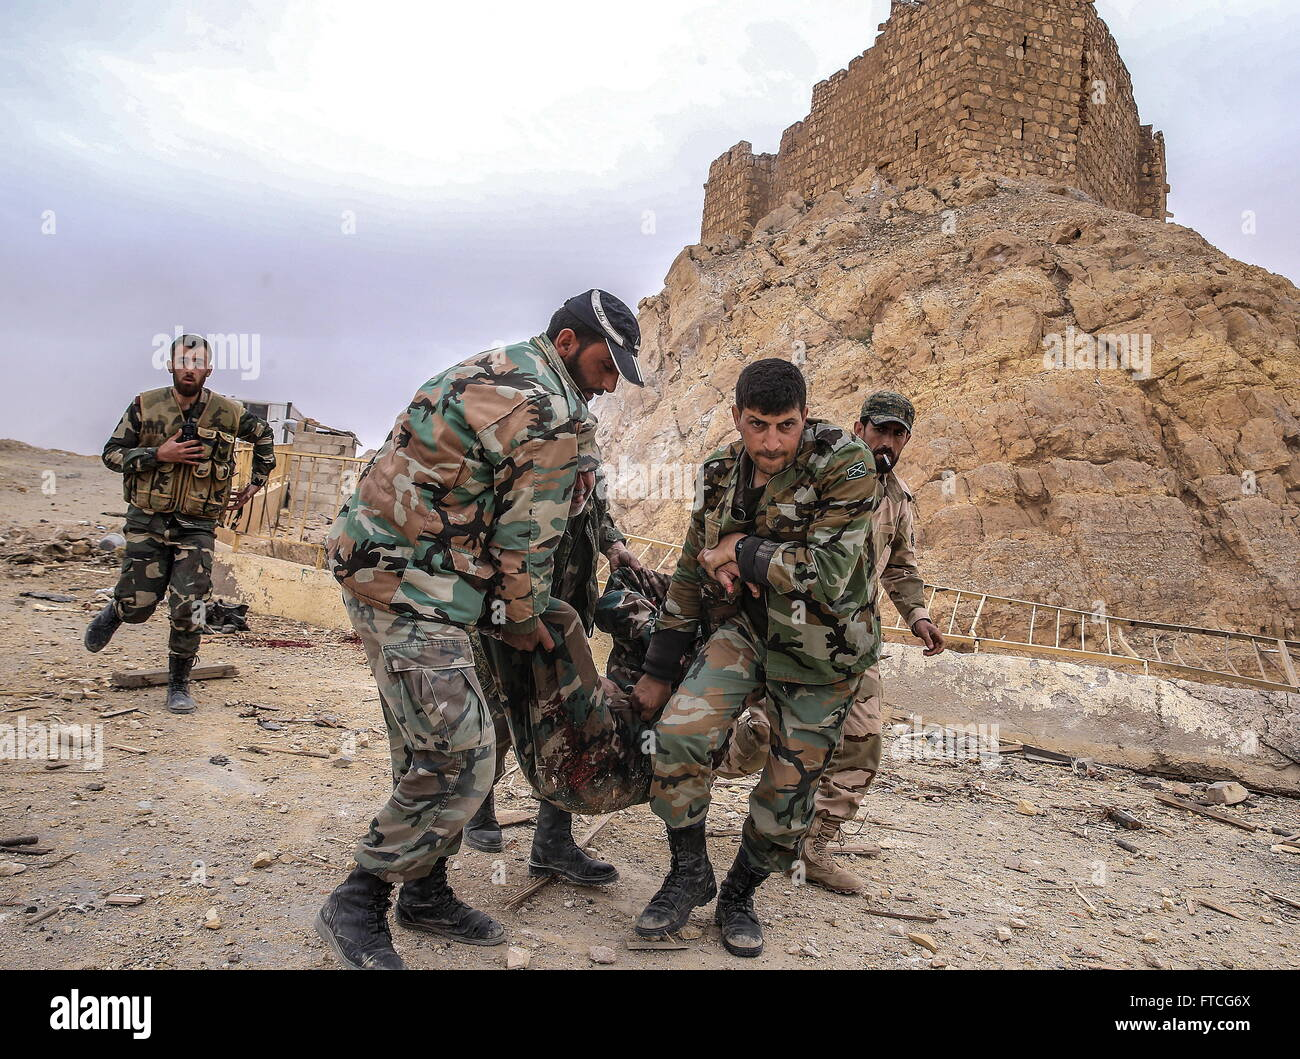 Palmyria, Syria. 26th Mar, 2016. Syrian government army soldiers tending to their fellow soldier who was injured Stock Photo